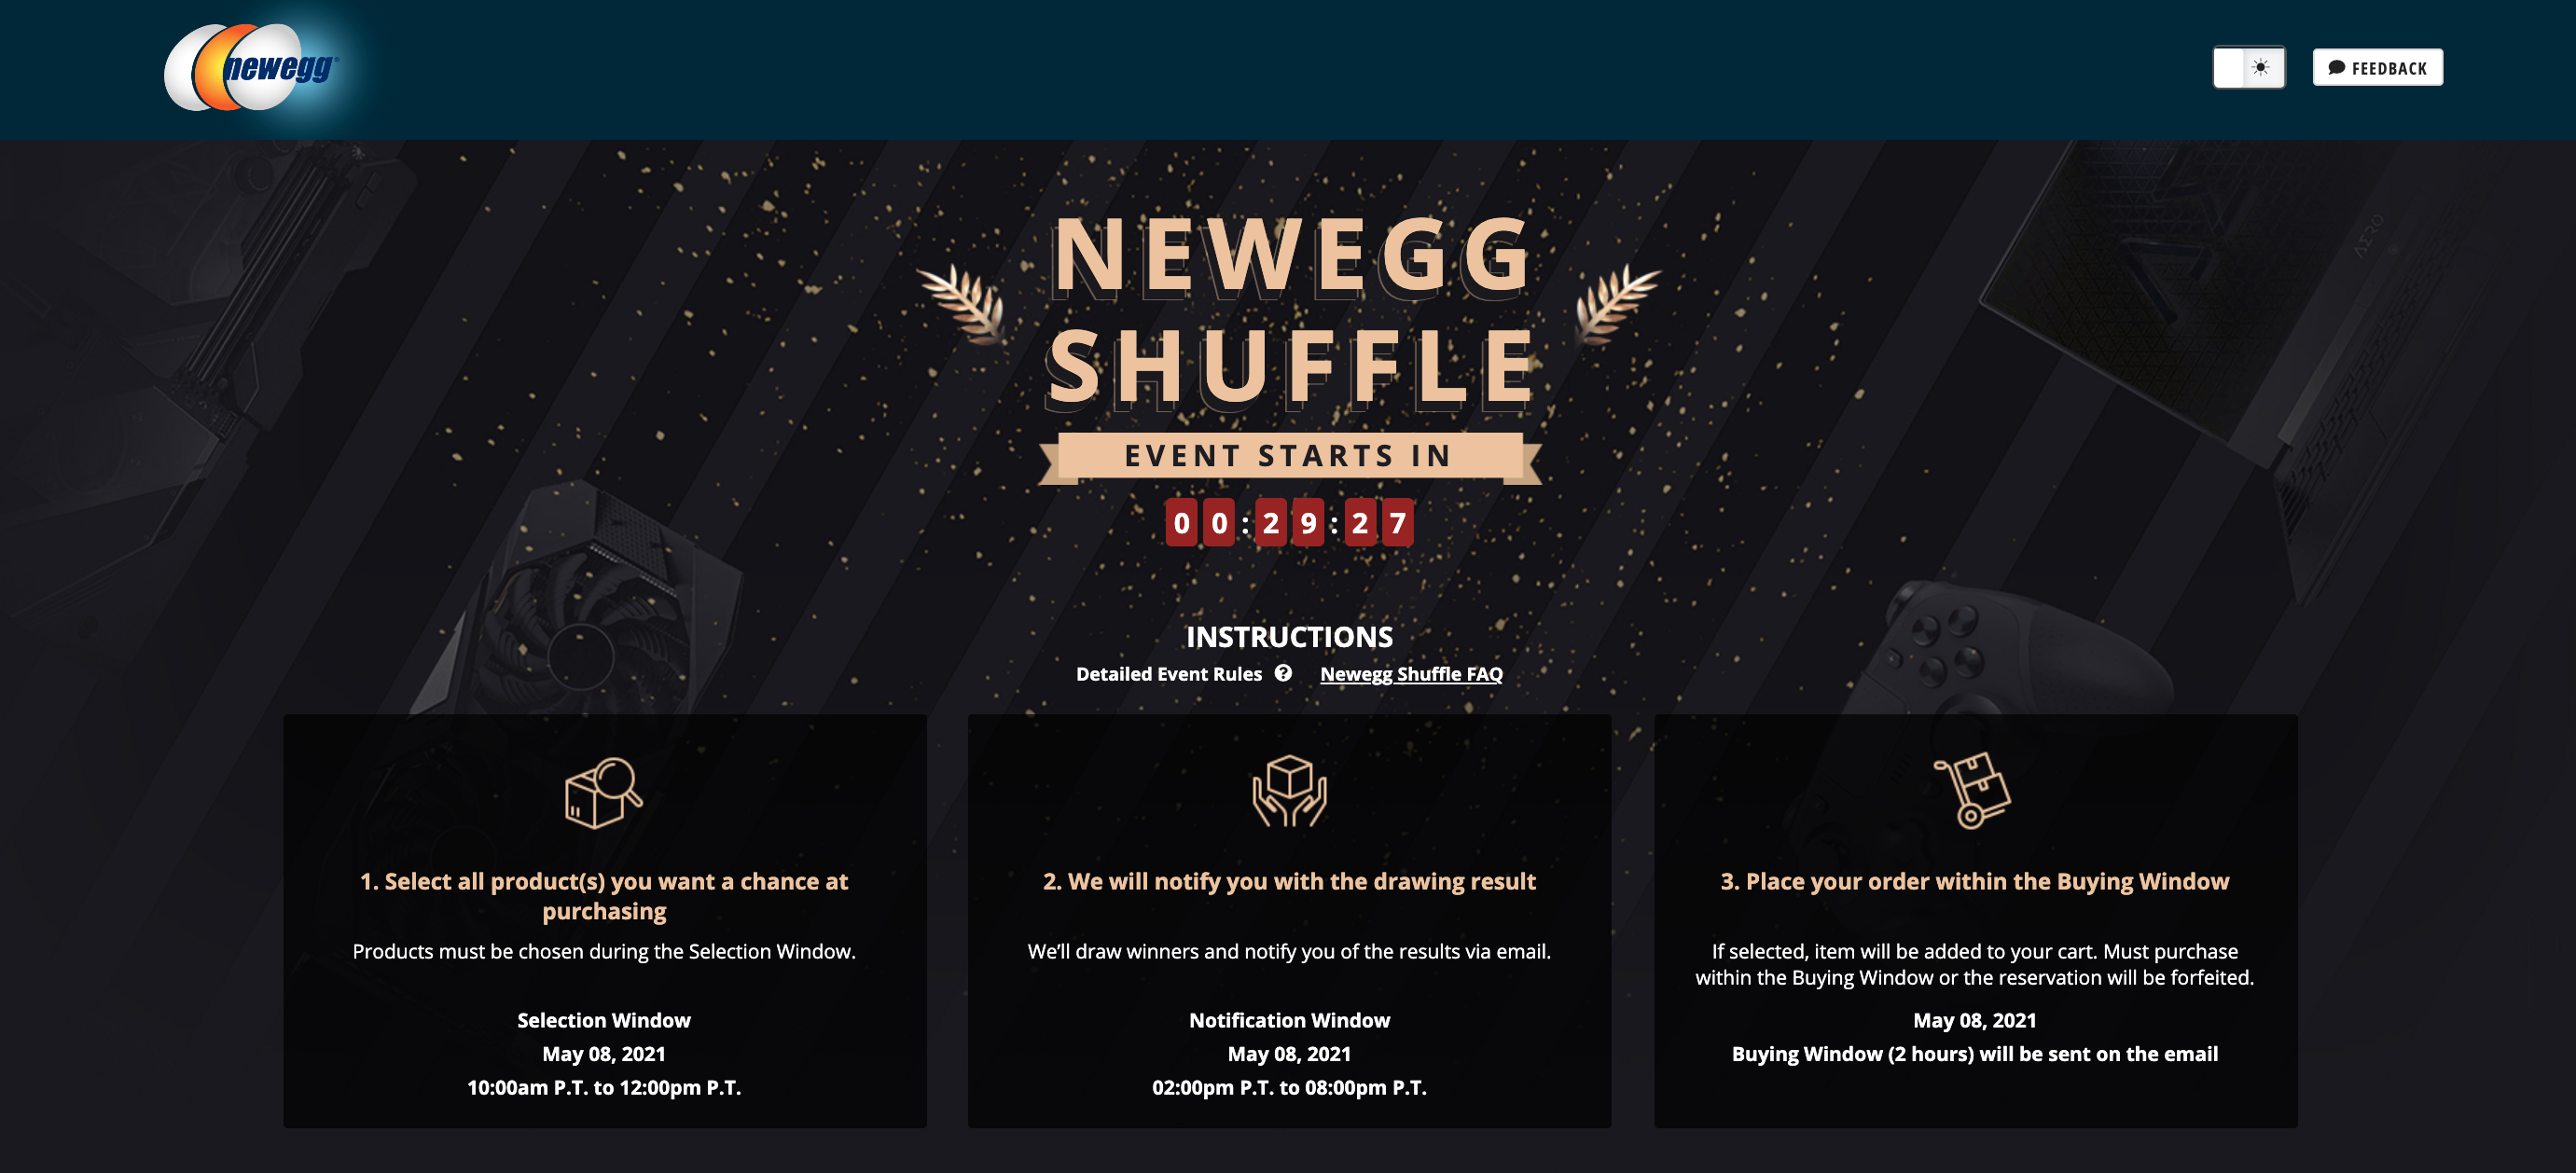 Newegg Shuffle – May 8th: AMD Takes Center Stage In Today's Shuffle With The Radeon RX 6700 XT, 6800, & 6900 XT Graphics Cards